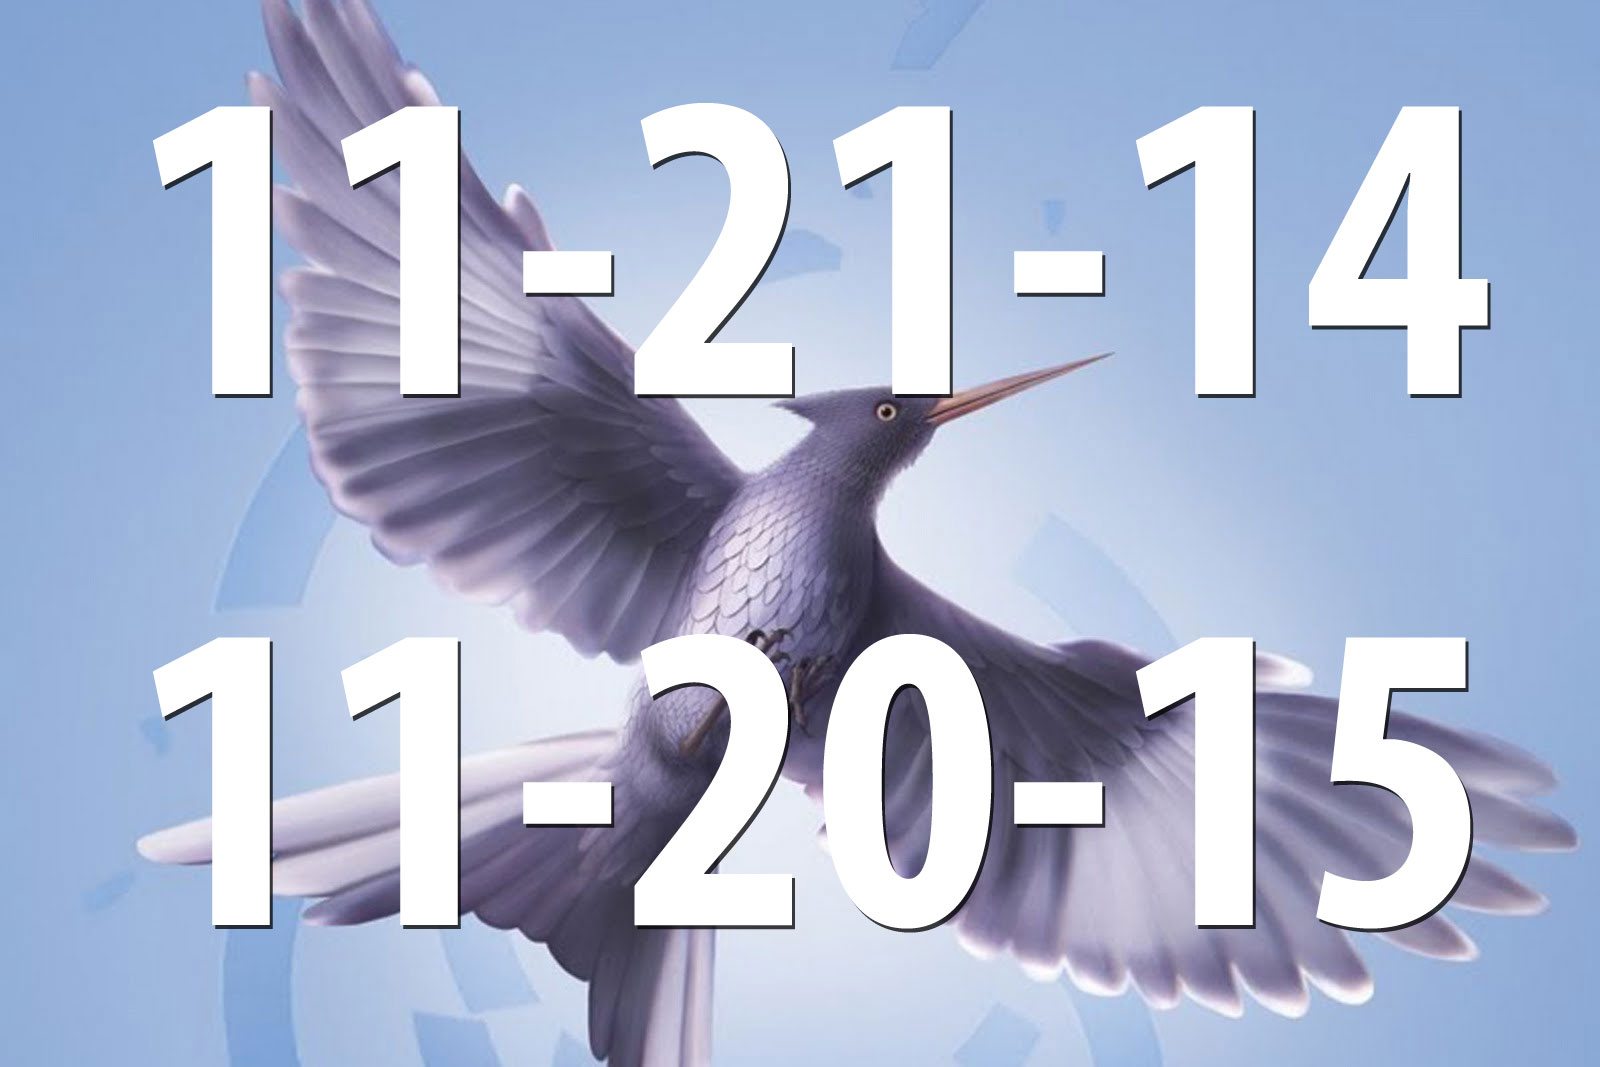 Mockingjay part 1 release date in Melbourne